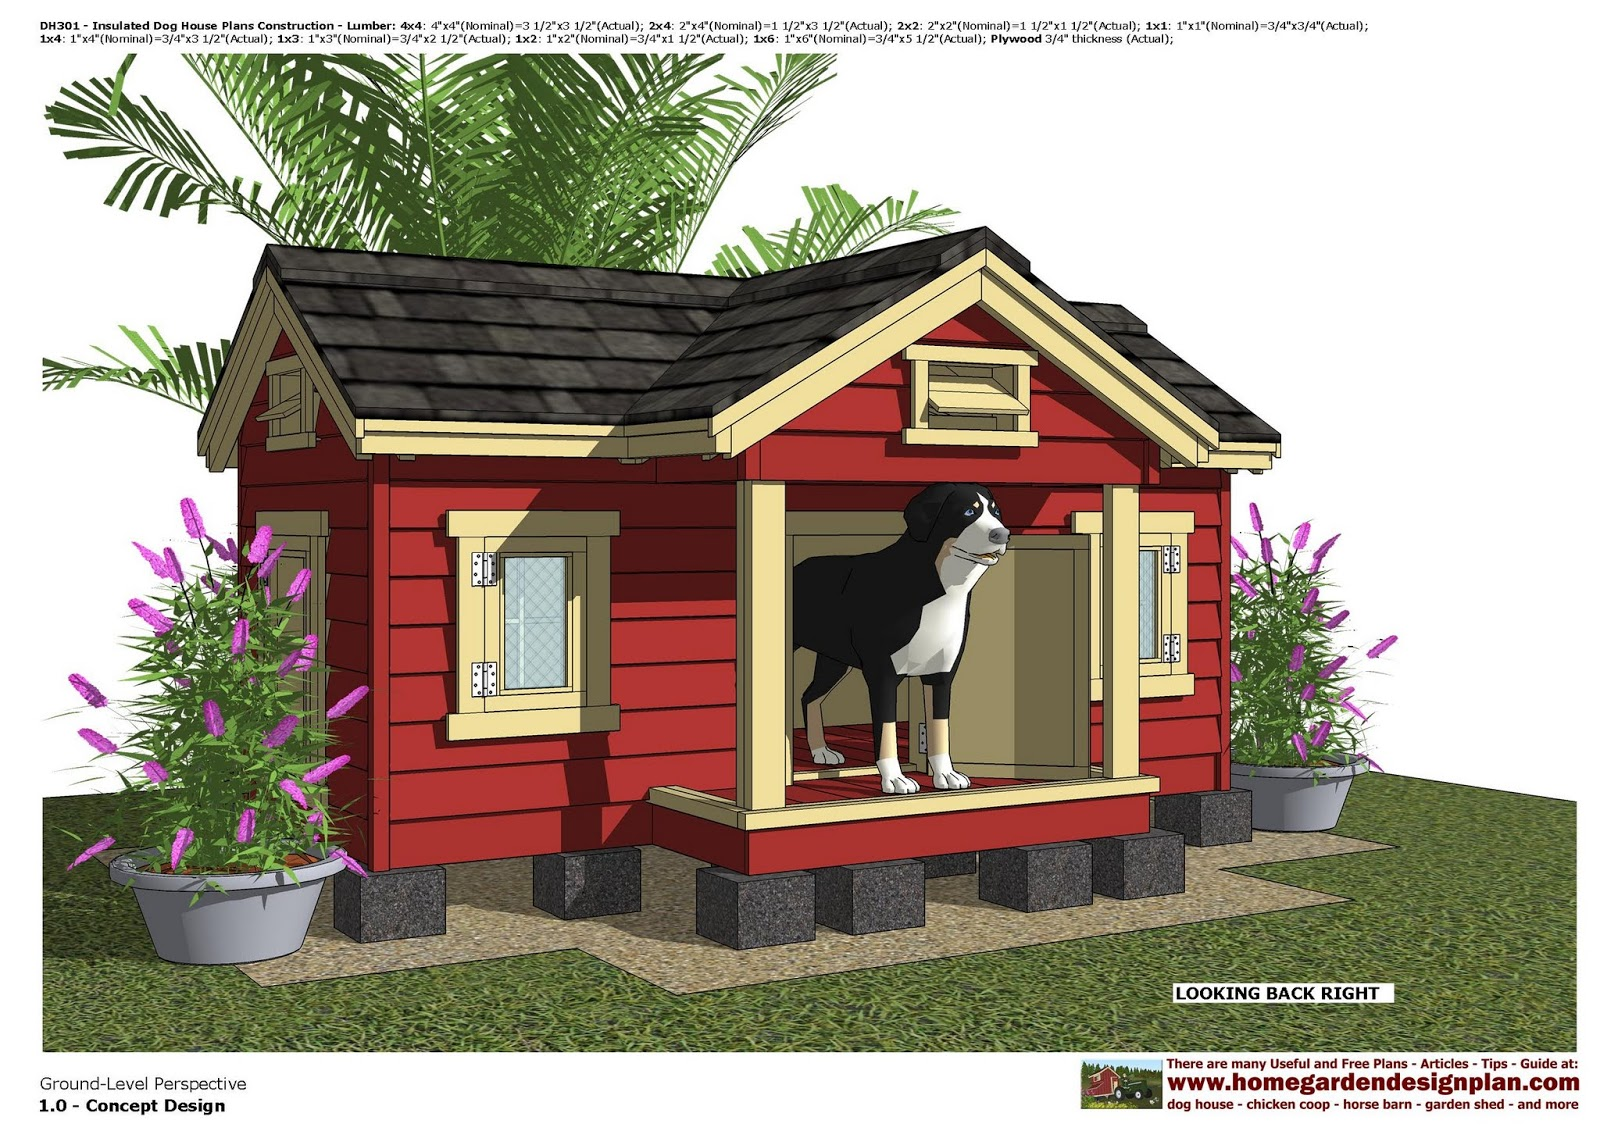 Doghouse clipart chicken house. Dh insulated dog plans